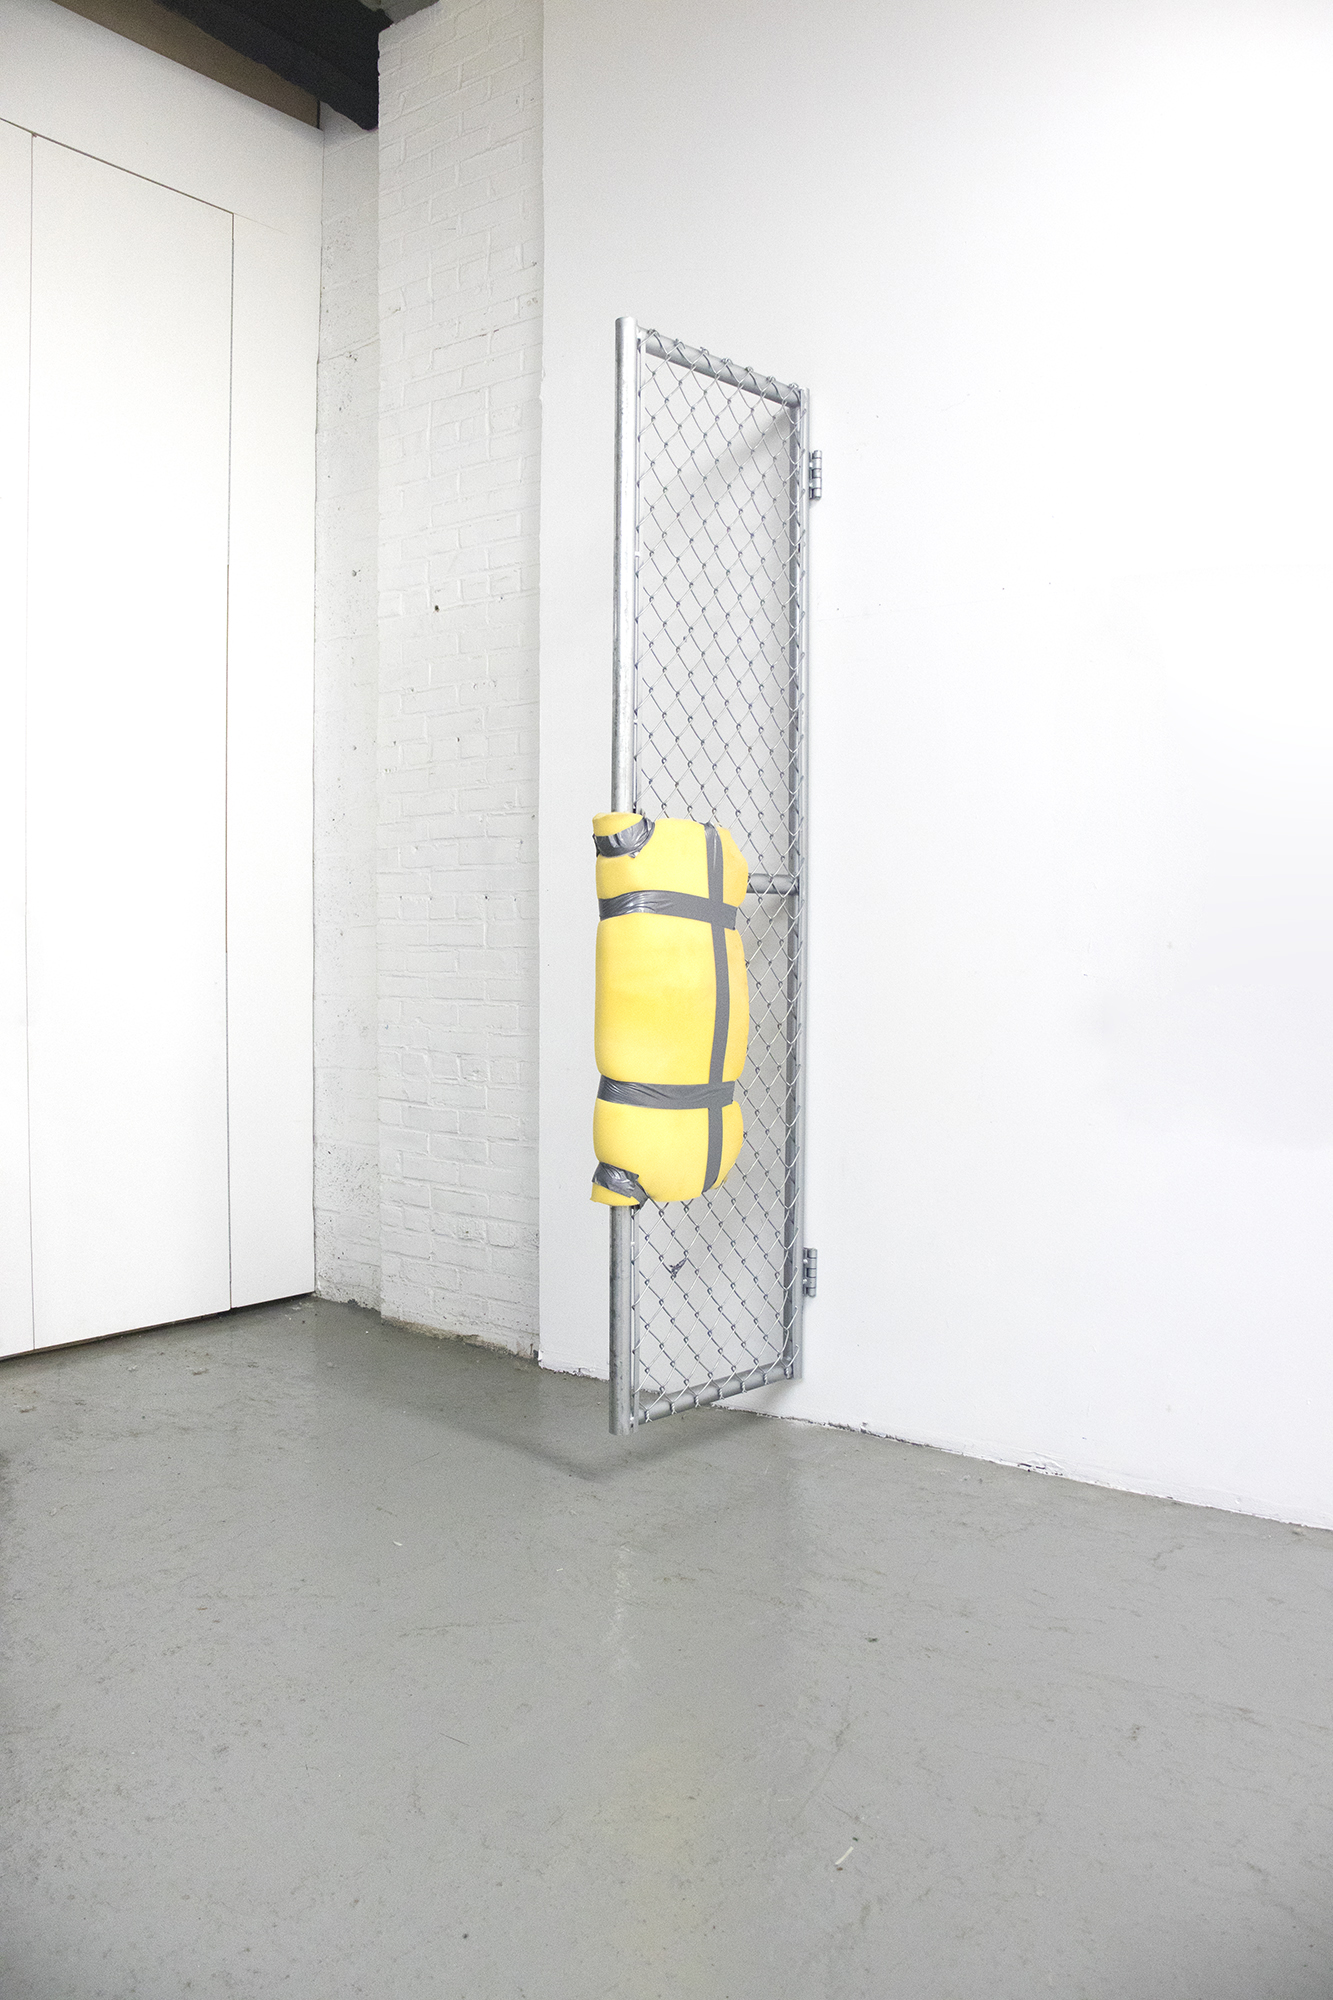 04_Rivlin_Bat-Ami_Untitled metal gate, yellow foam, duct tape_Found object sculpture_90x35x35